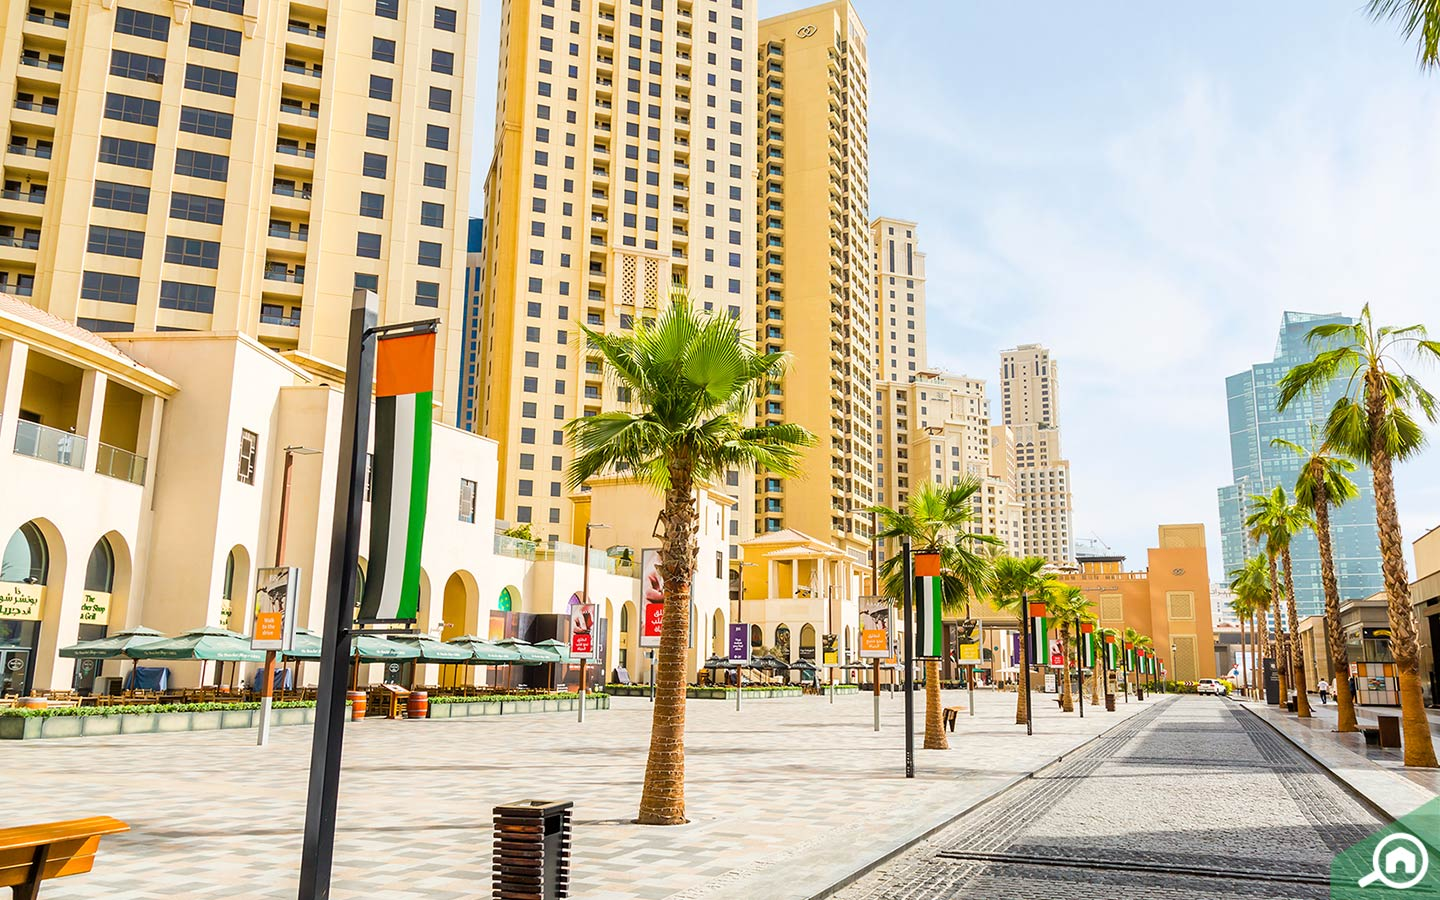 The Walk at JBR with apartment buildings in background